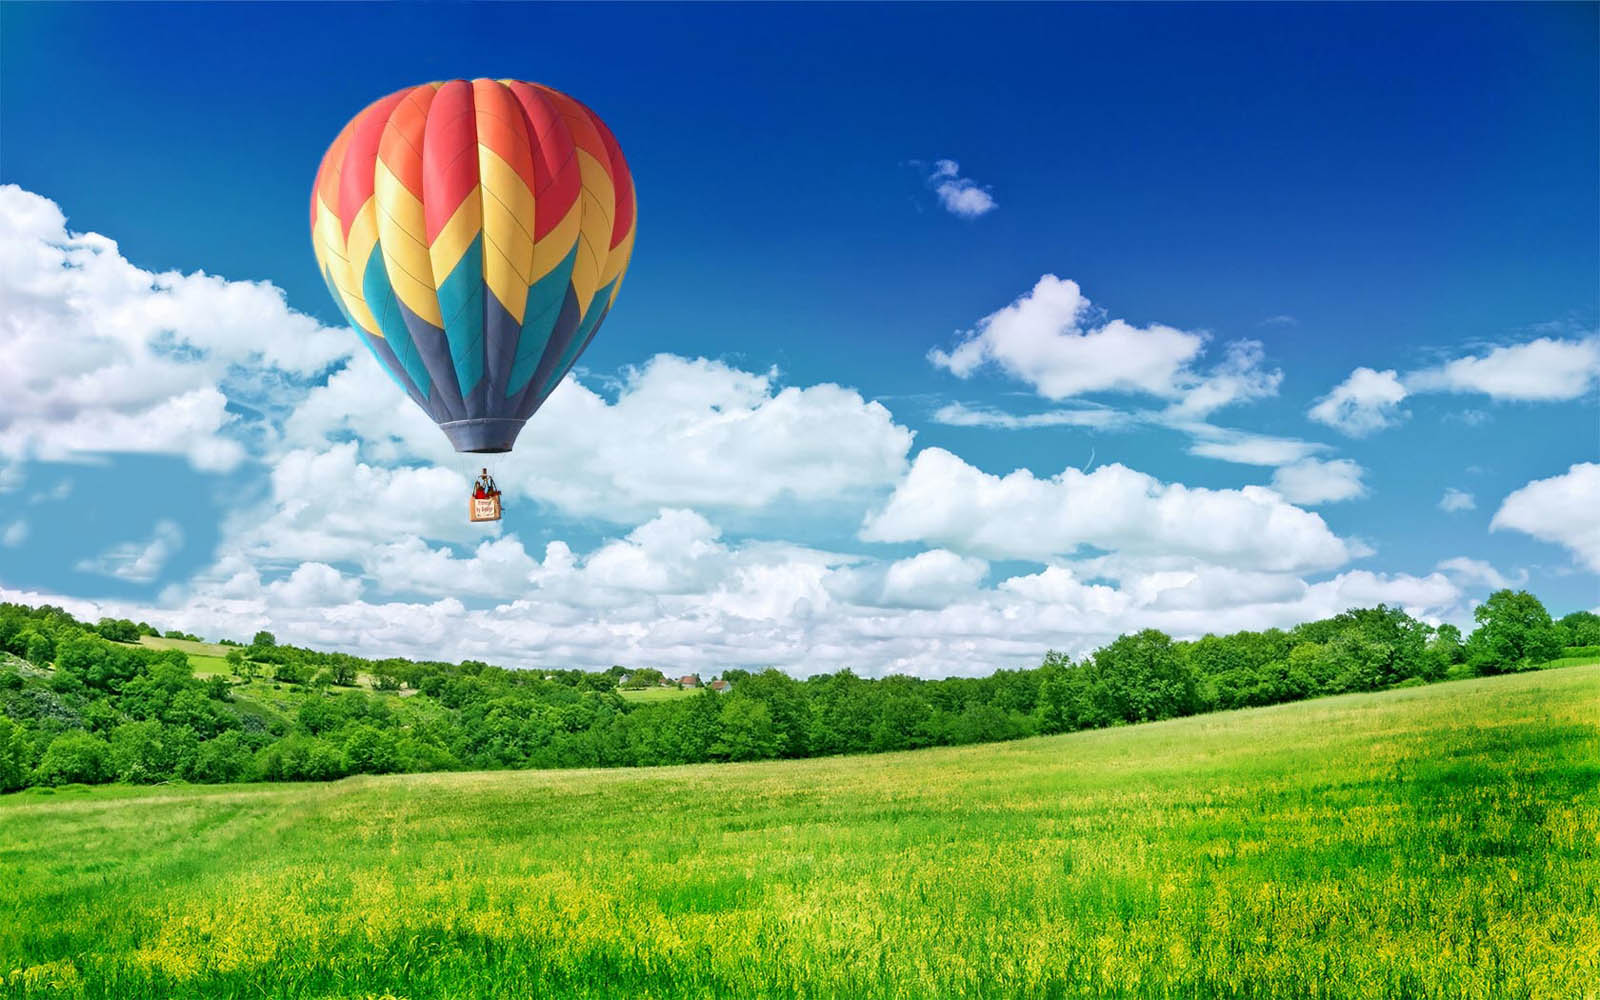 balloons wallpapers - photo #12